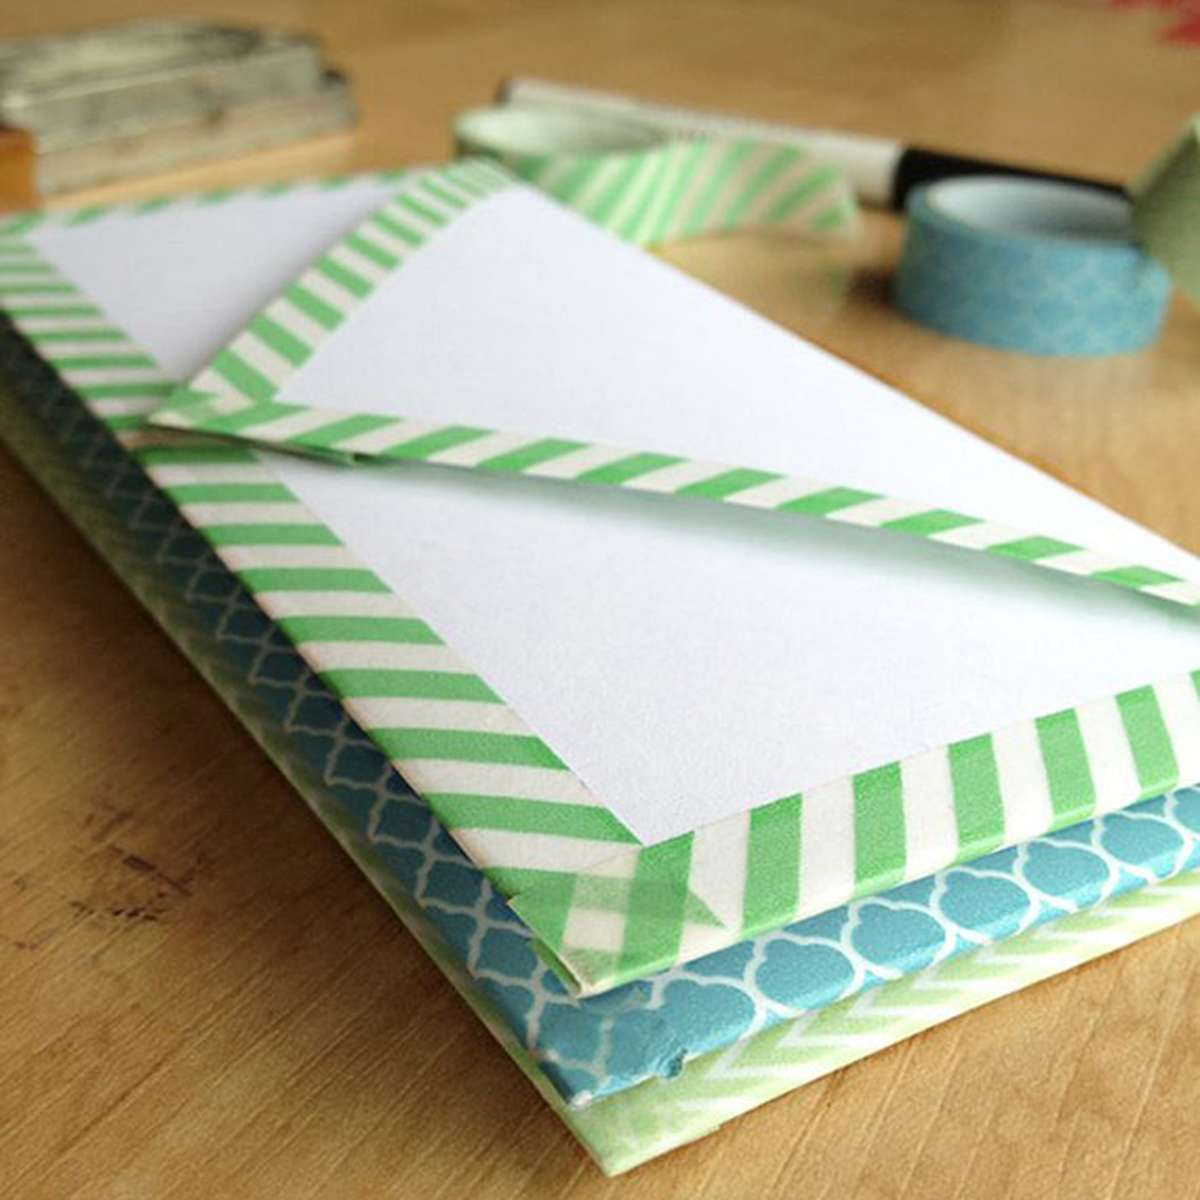 diy envelope decoration with washi tape